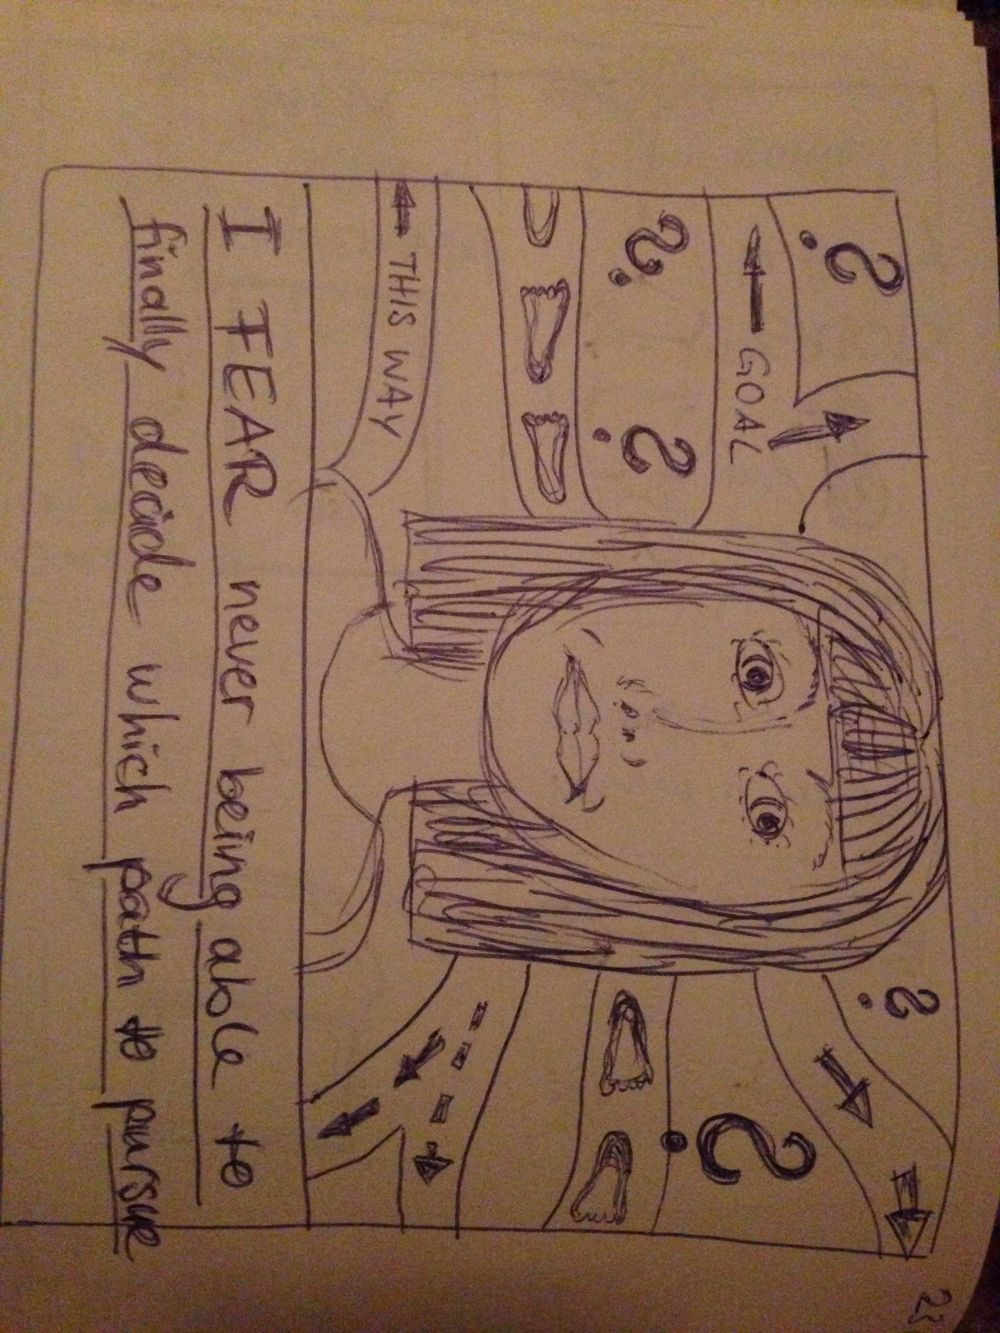 Emotion journaling - image 4 - student project